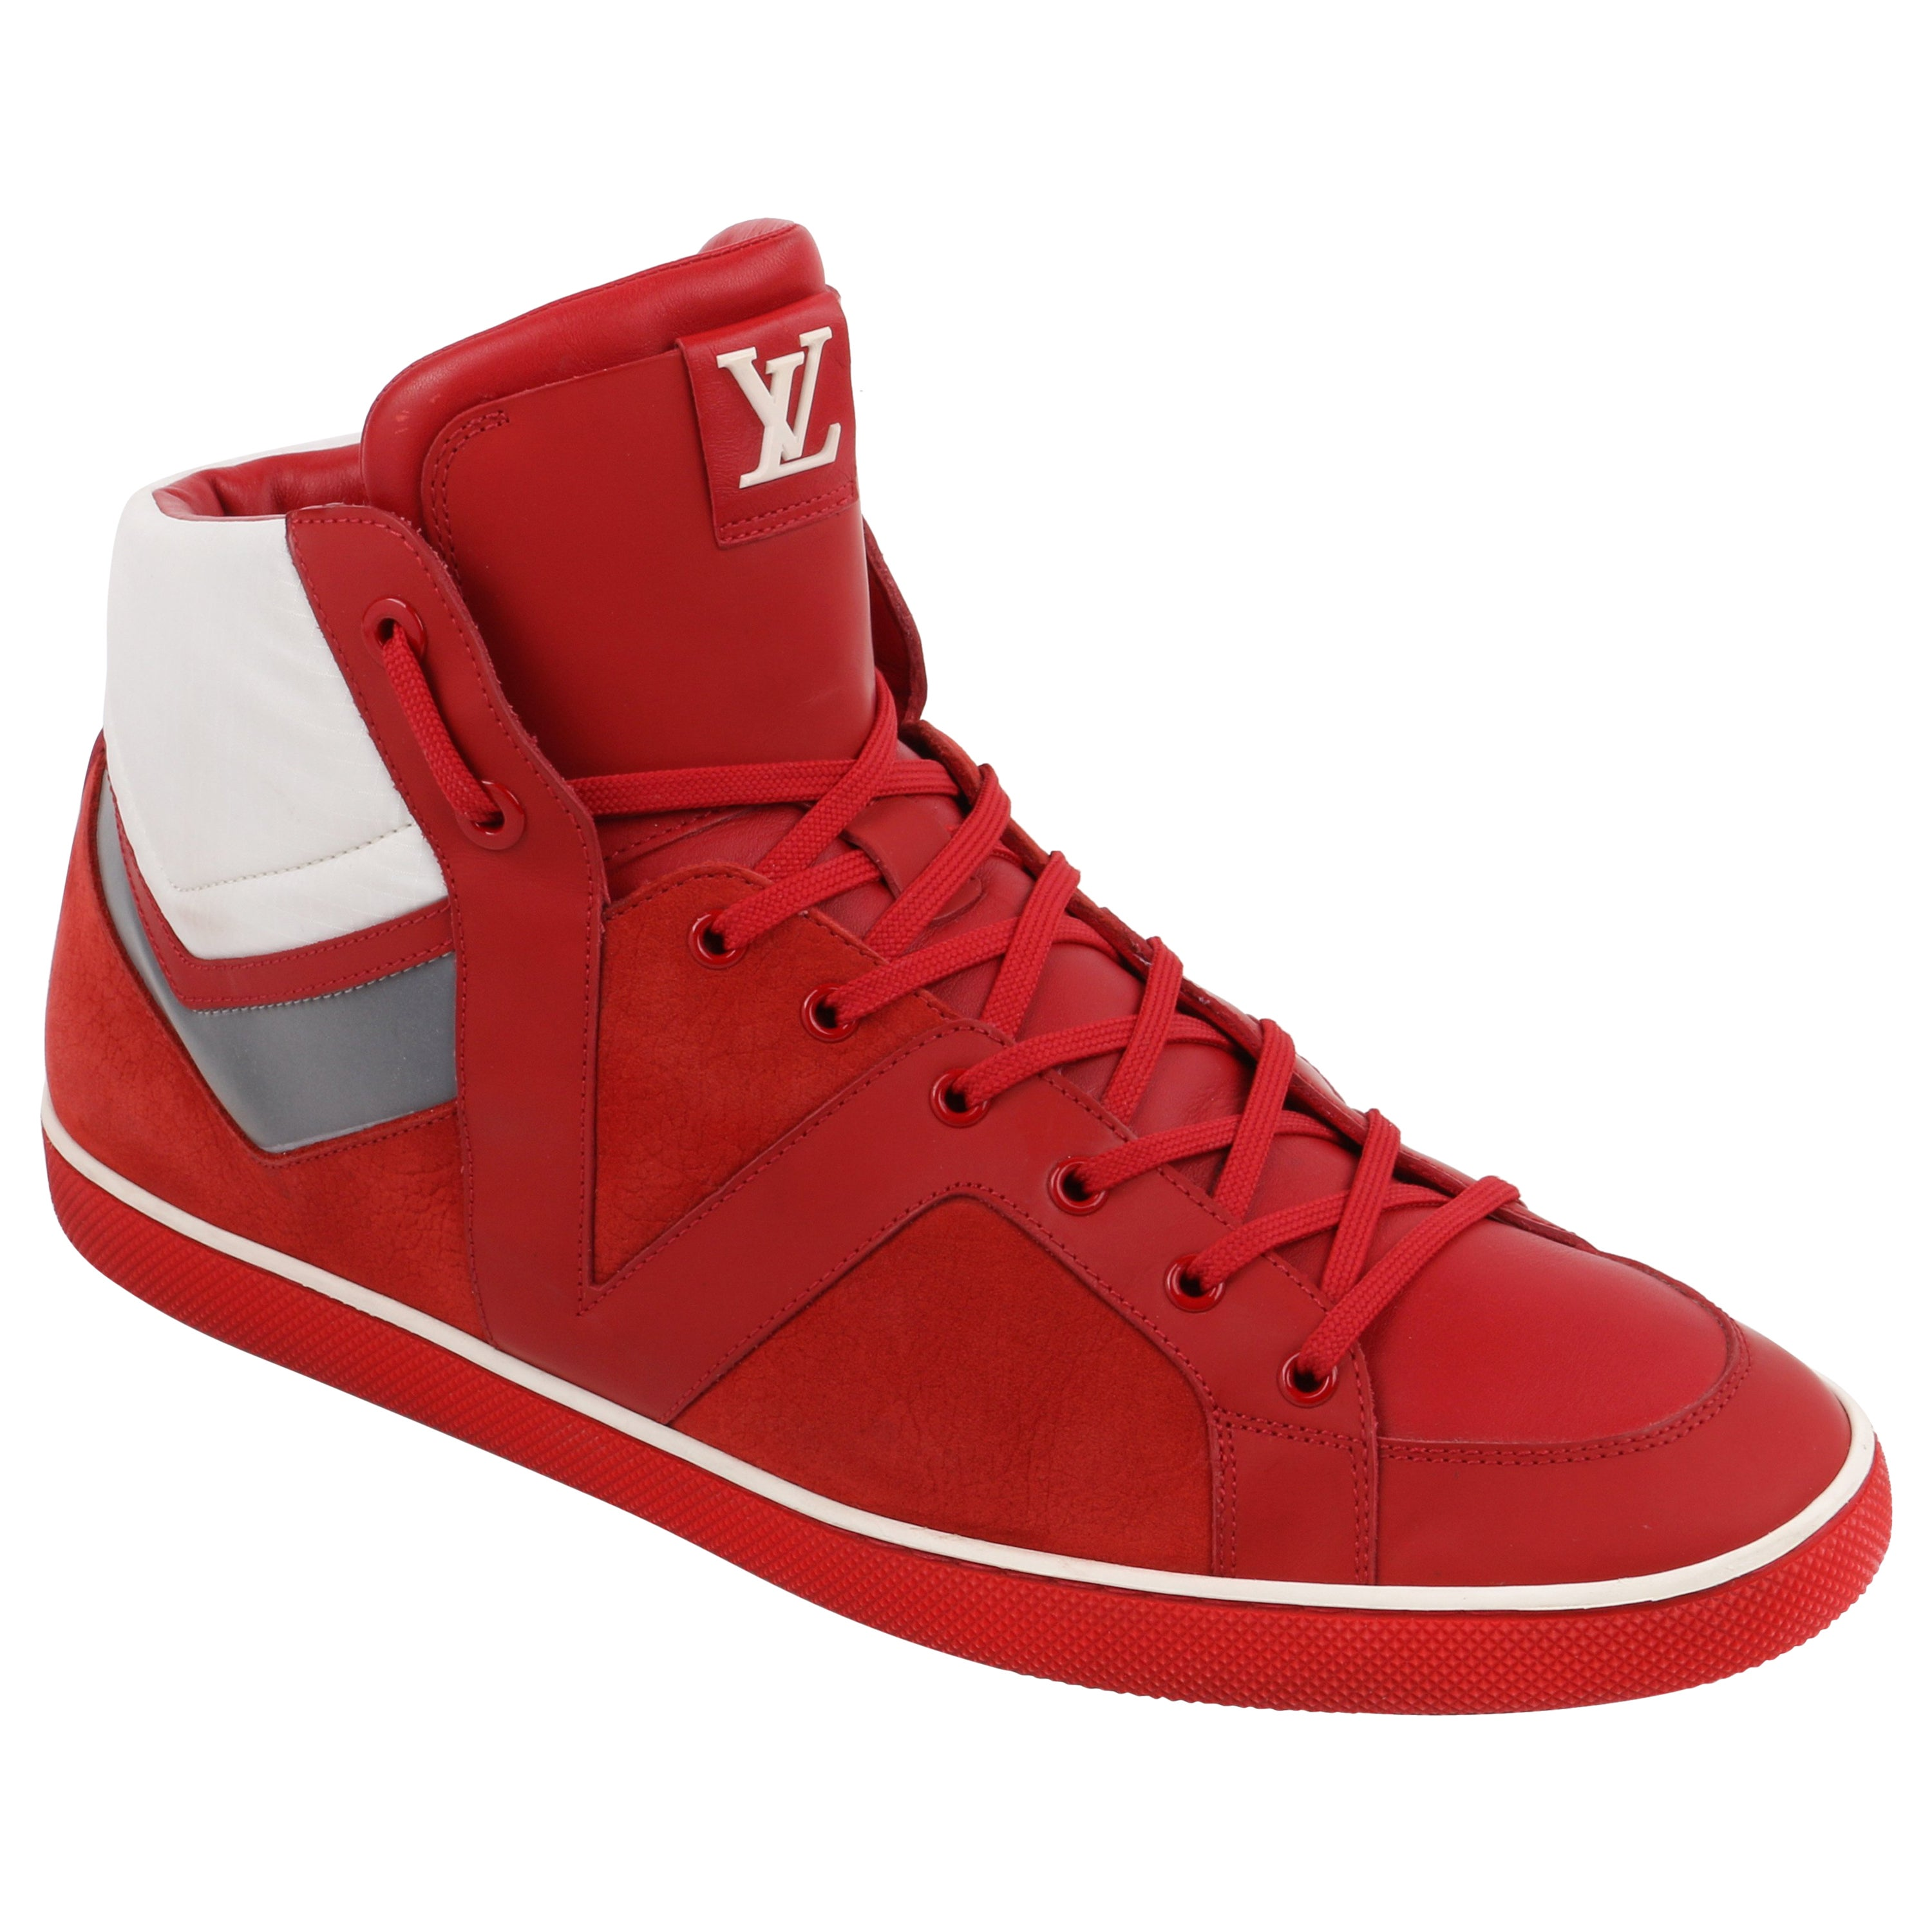 """LOUIS VUITTON A/W 2012 """"Heroes"""" Red Suede & Leather High Top Sneaker Boot"""